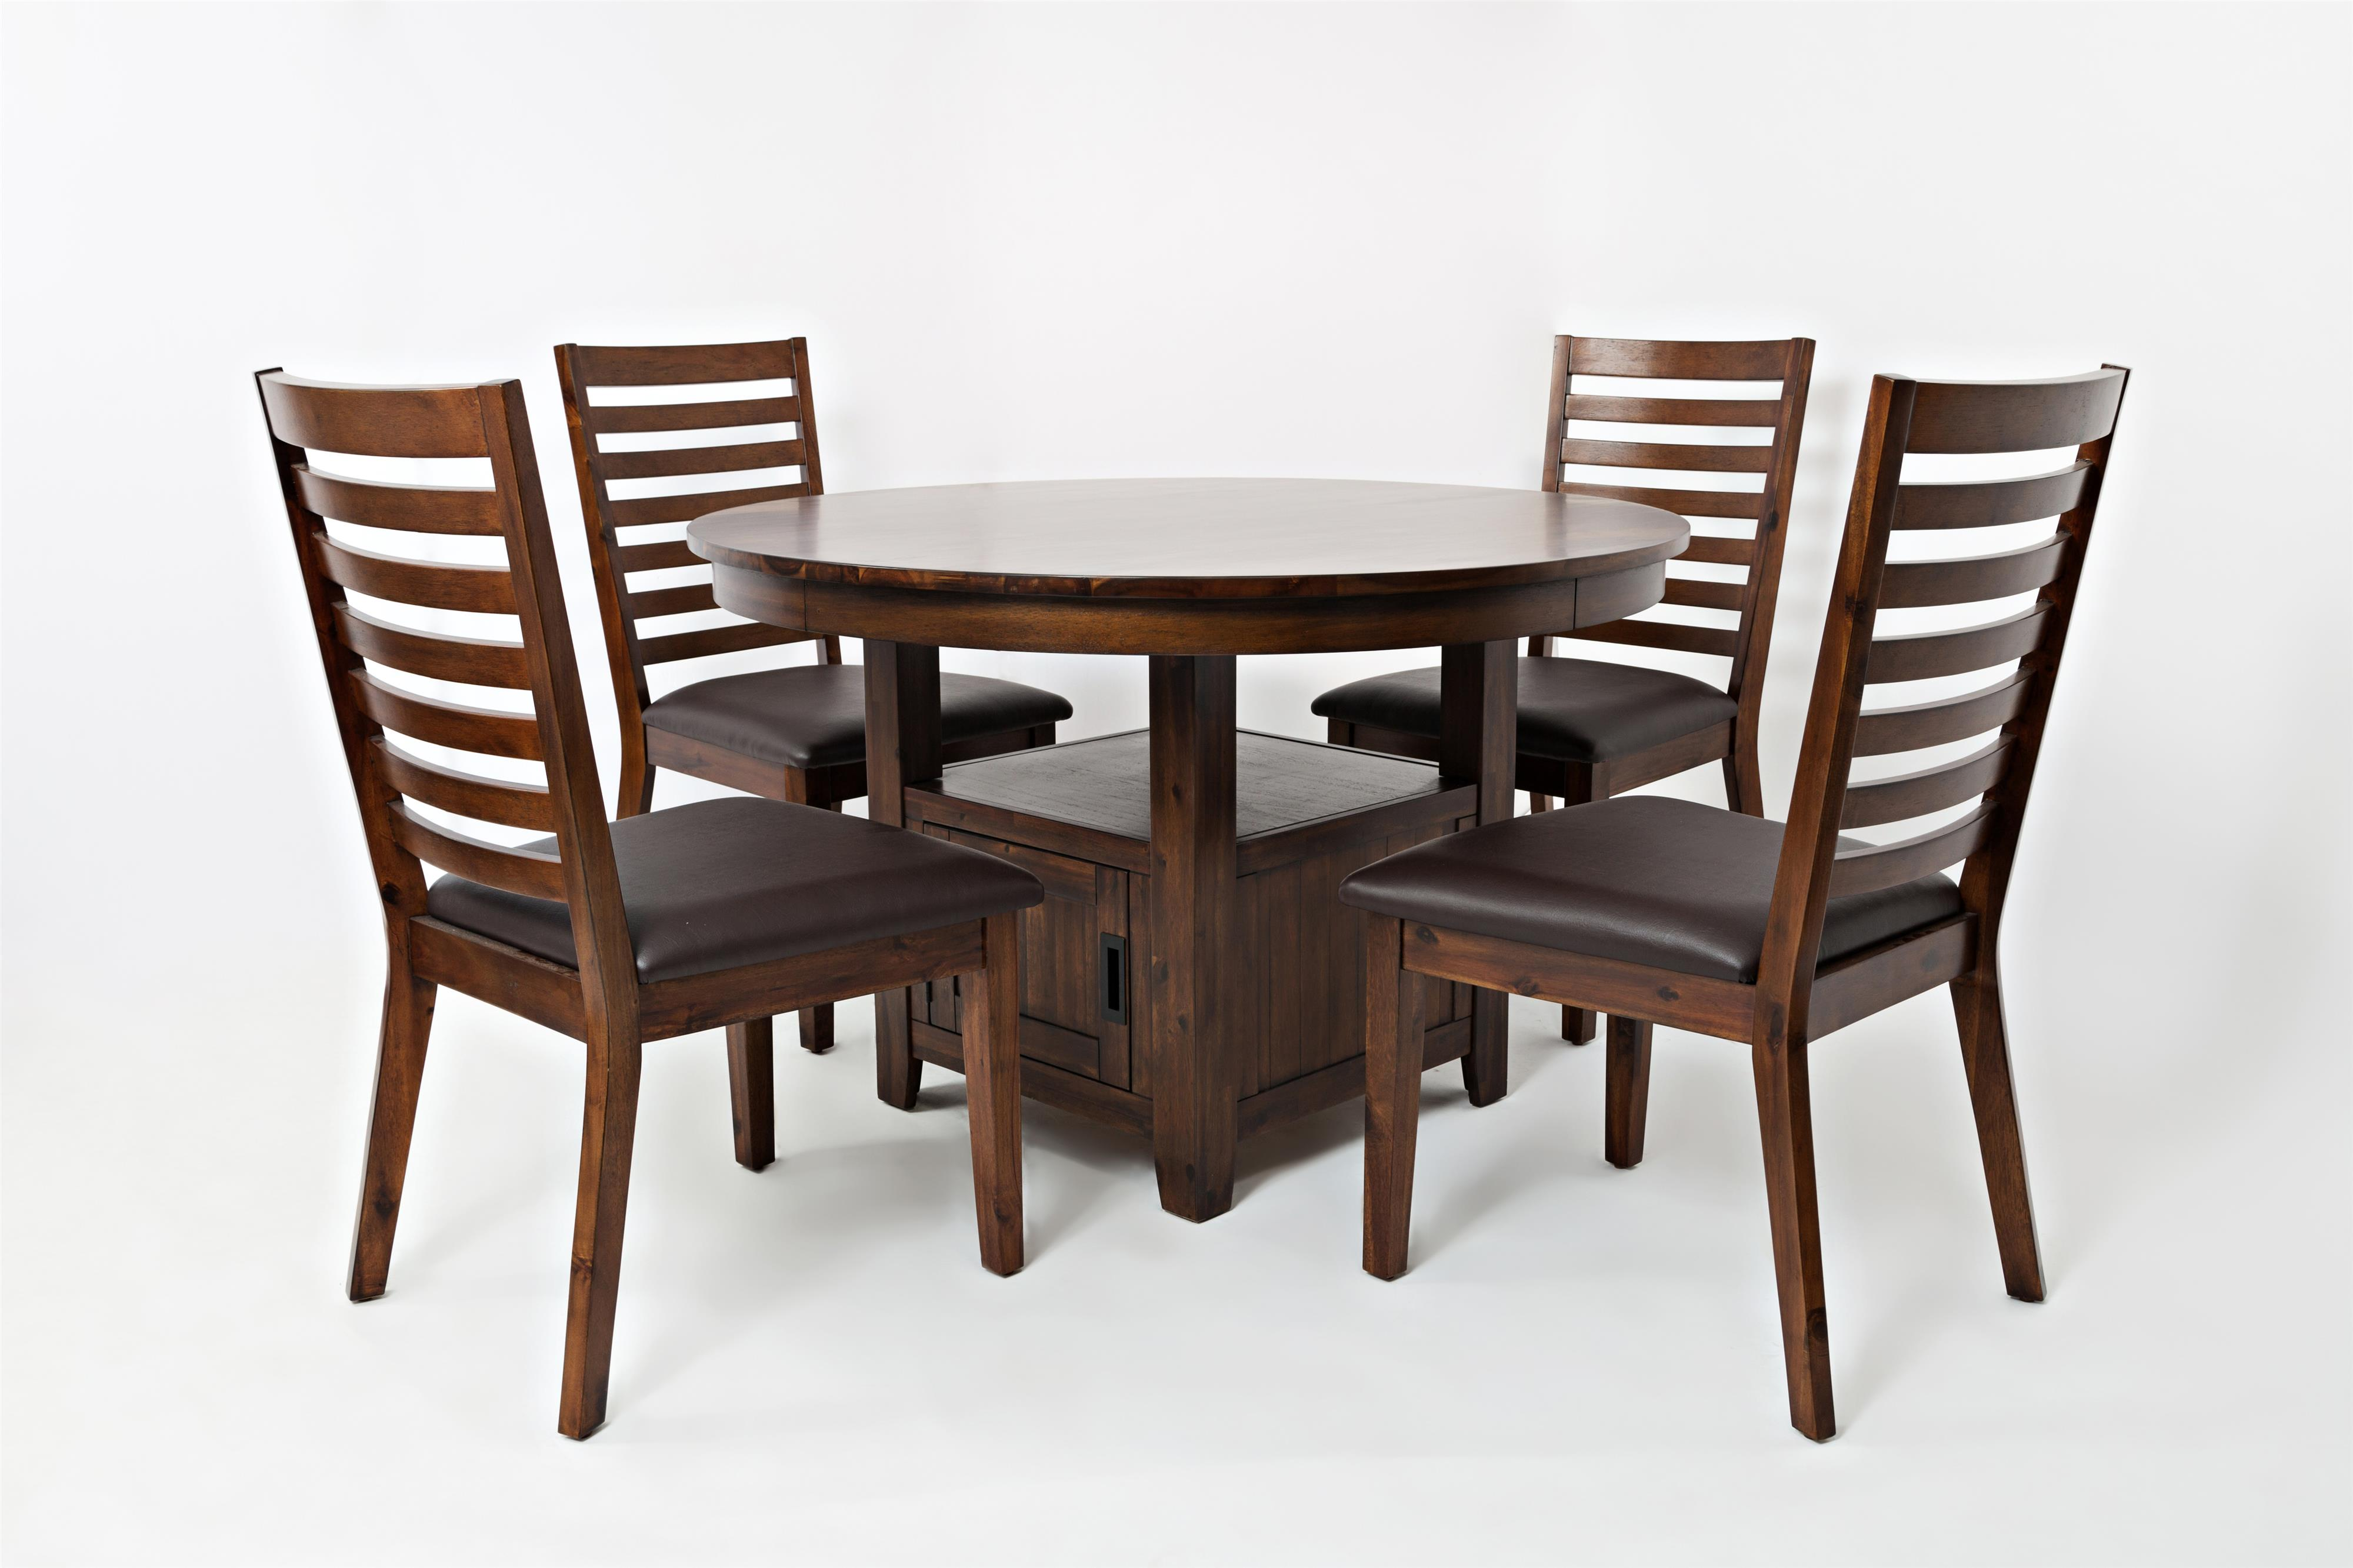 high table chair set resin wicker chairs 48 quot round low and by jofran wolf